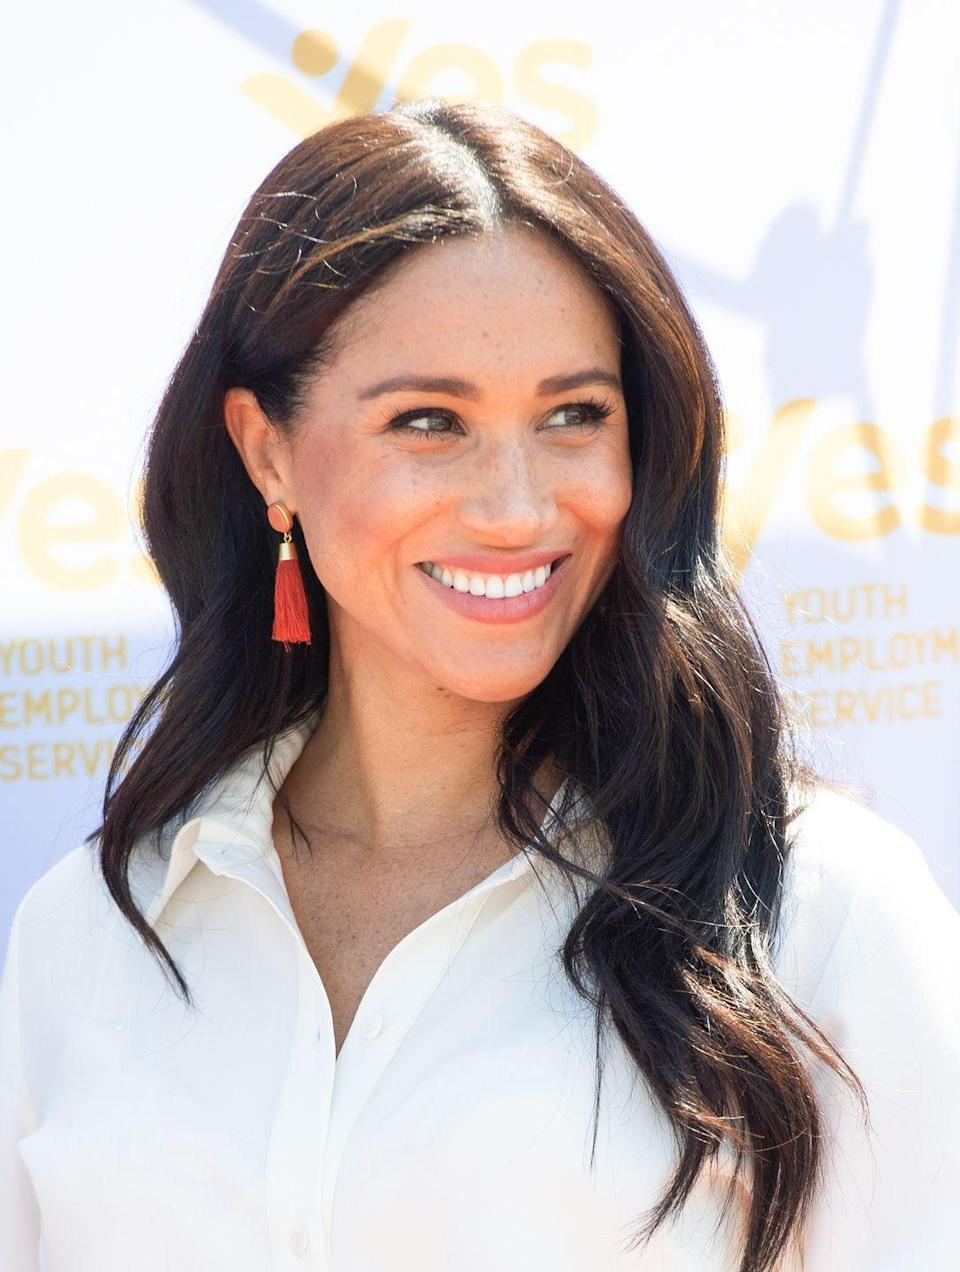 <p>If you're searching for all-over color that appears entirely natural, look to Meghan Markle for inspiration. Her soft chocolate brown shade is pretty on nearly any skin tone and is perfect for any season, says Baghaei. </p>